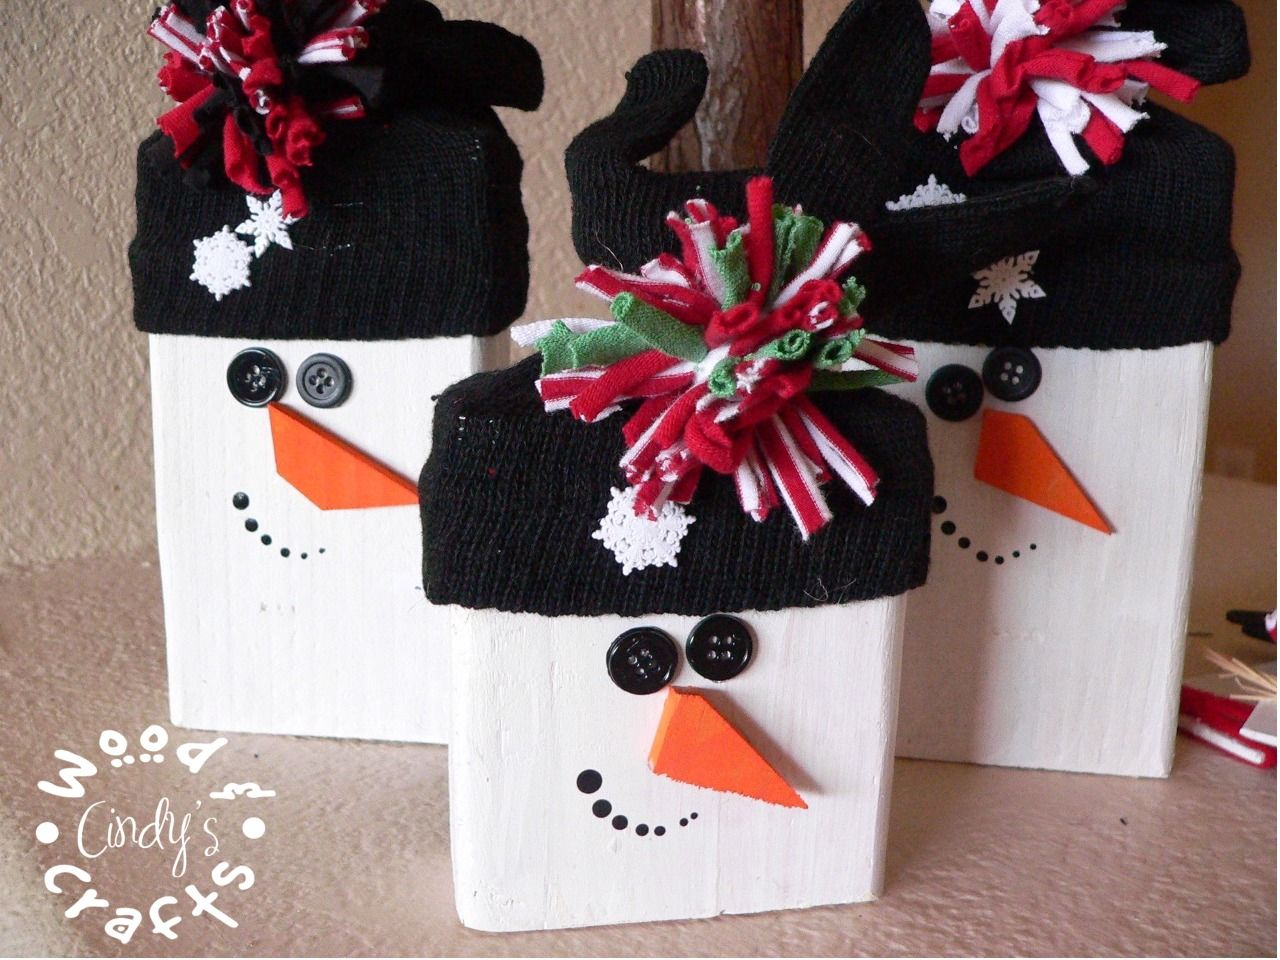 Christmas Craft Ideas For Middle School